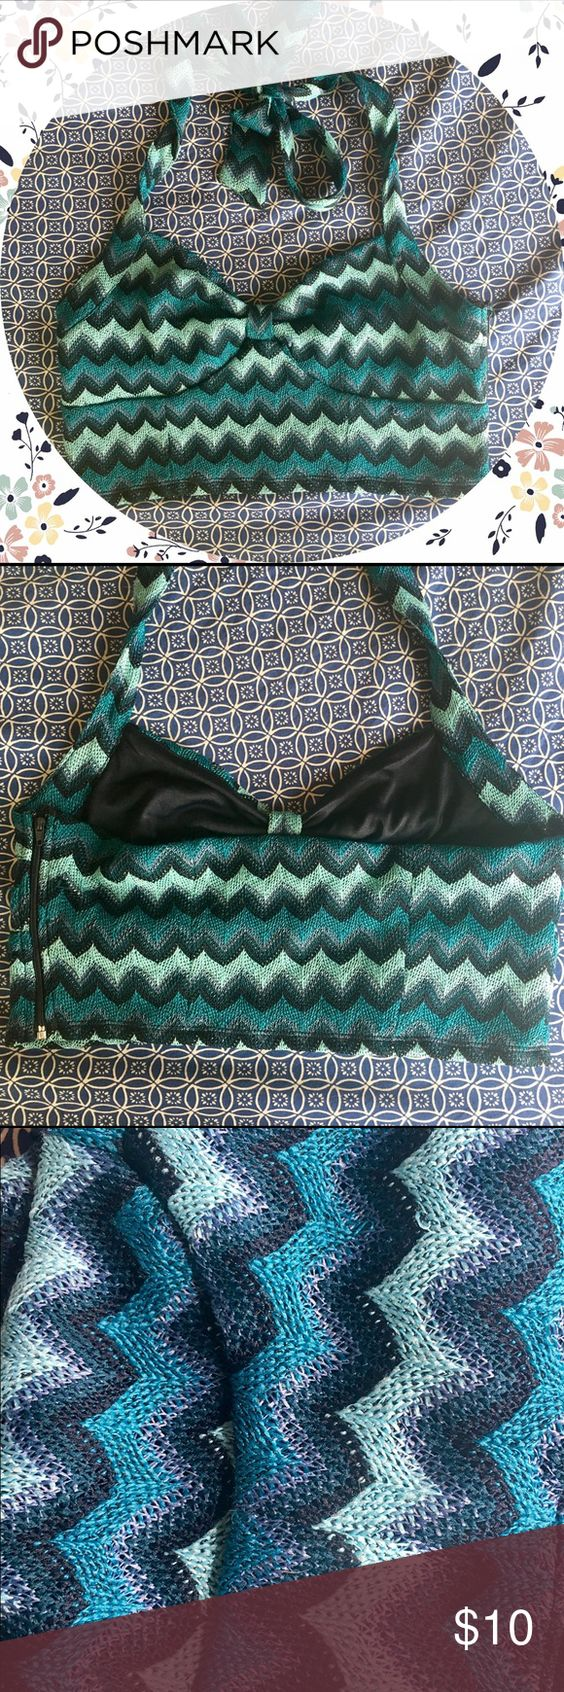 Chevron Crop Top Cute woven festival crop top in great condition, never worn. Toes behind the neck which makes it a bit adjustable, and there's a zipper on the side. Really pretty gradient blues. No trades. ⭐️HIT THE OFFER BUTTON! ⭐️ BUNDLE 2+ ITEMS FOR 25% OFF! ⭐️ Forever 21 Tops Crop Tops